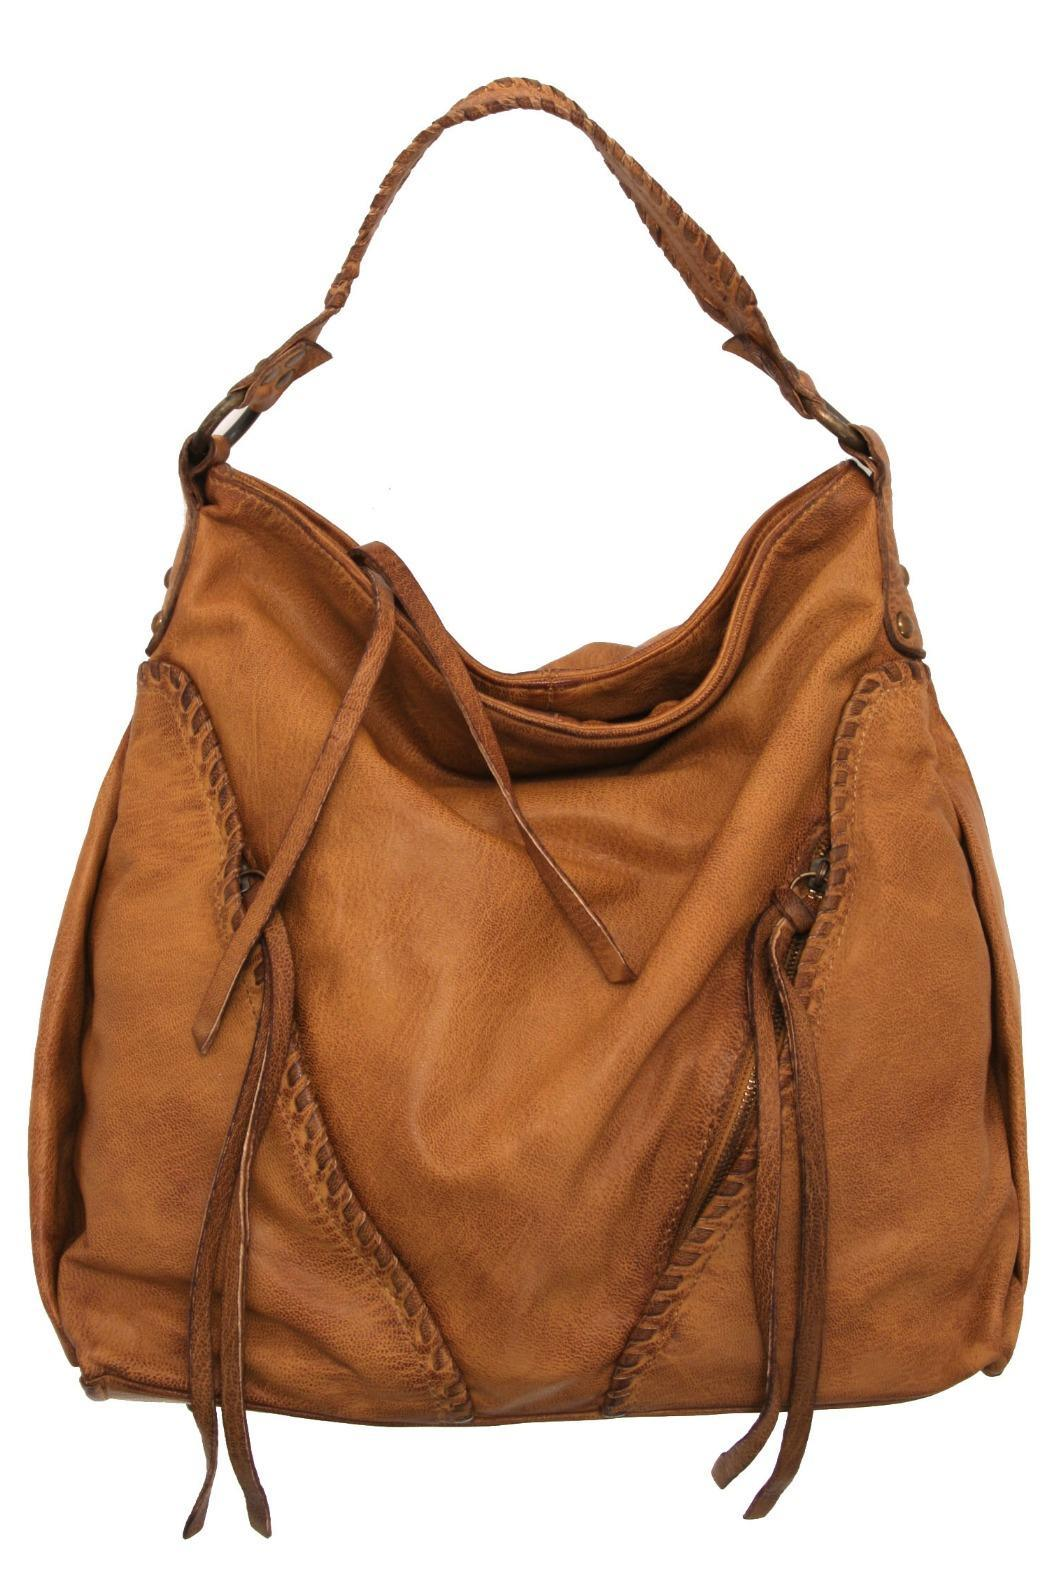 f94d20bd69ab Tano Leather Bag from New York by Let s Bag It — Shoptiques